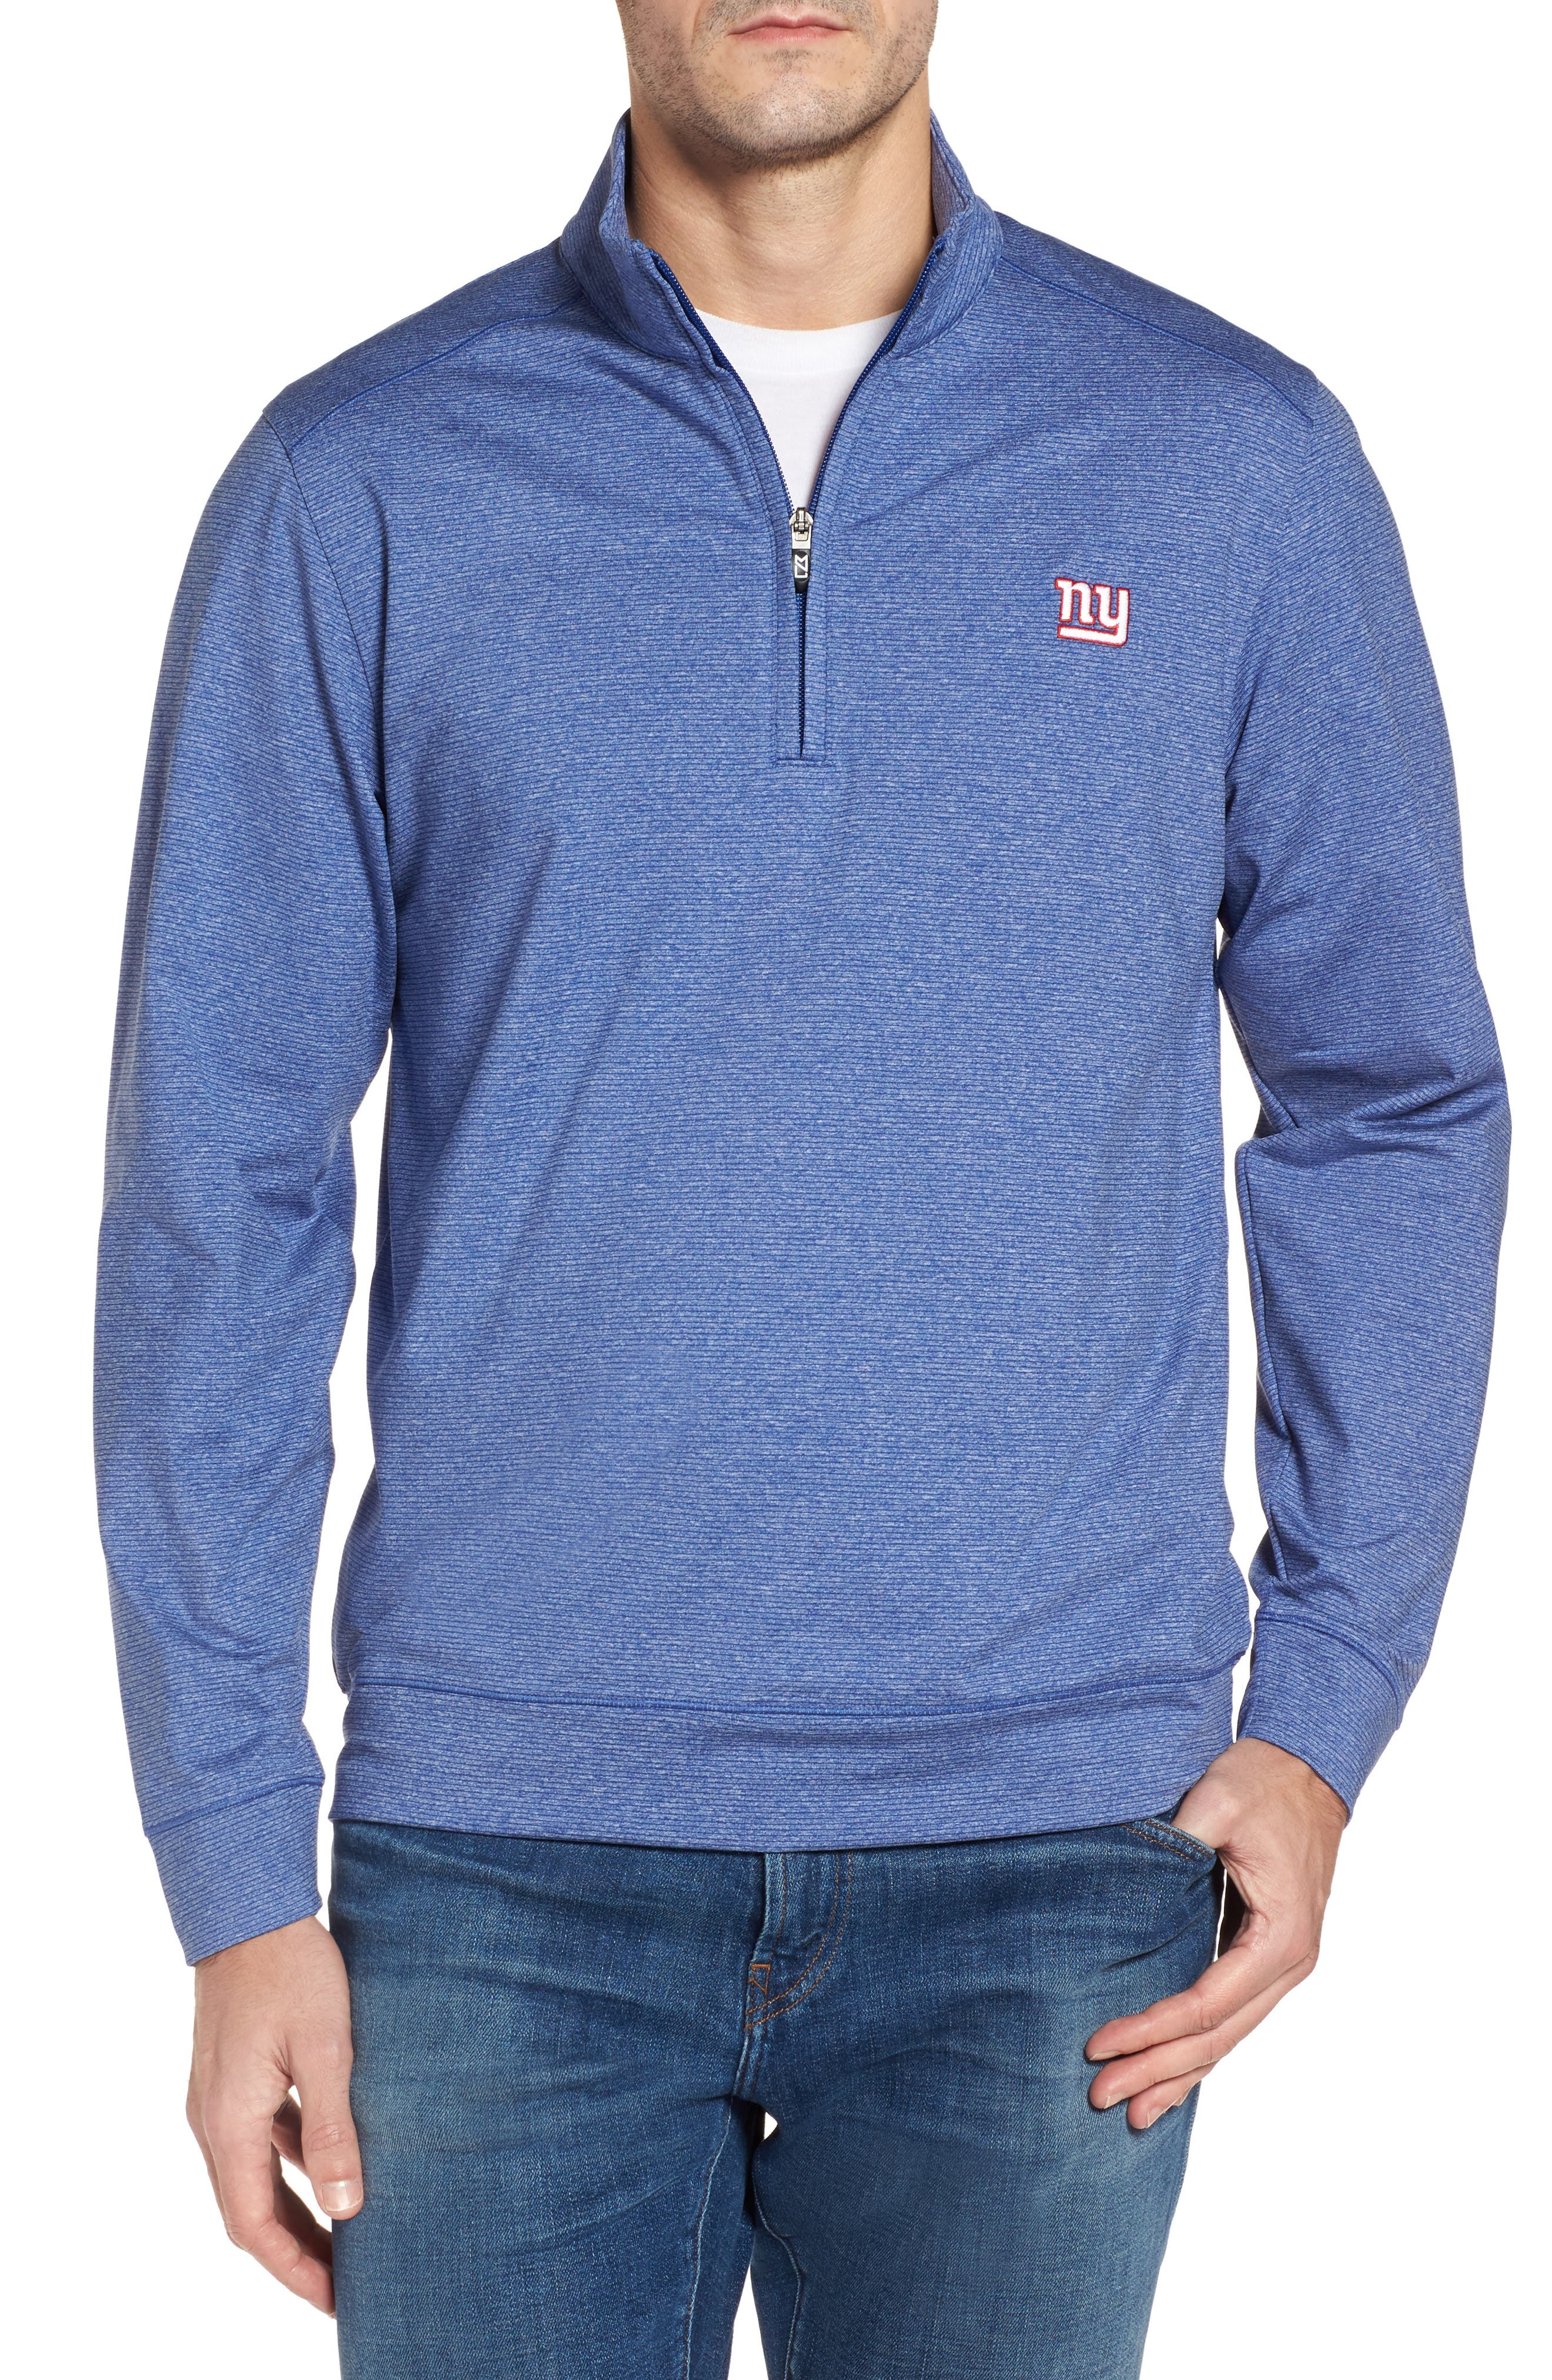 Shoreline - New York Giants Half Zip Pullover,                             Main thumbnail 1, color,                             425